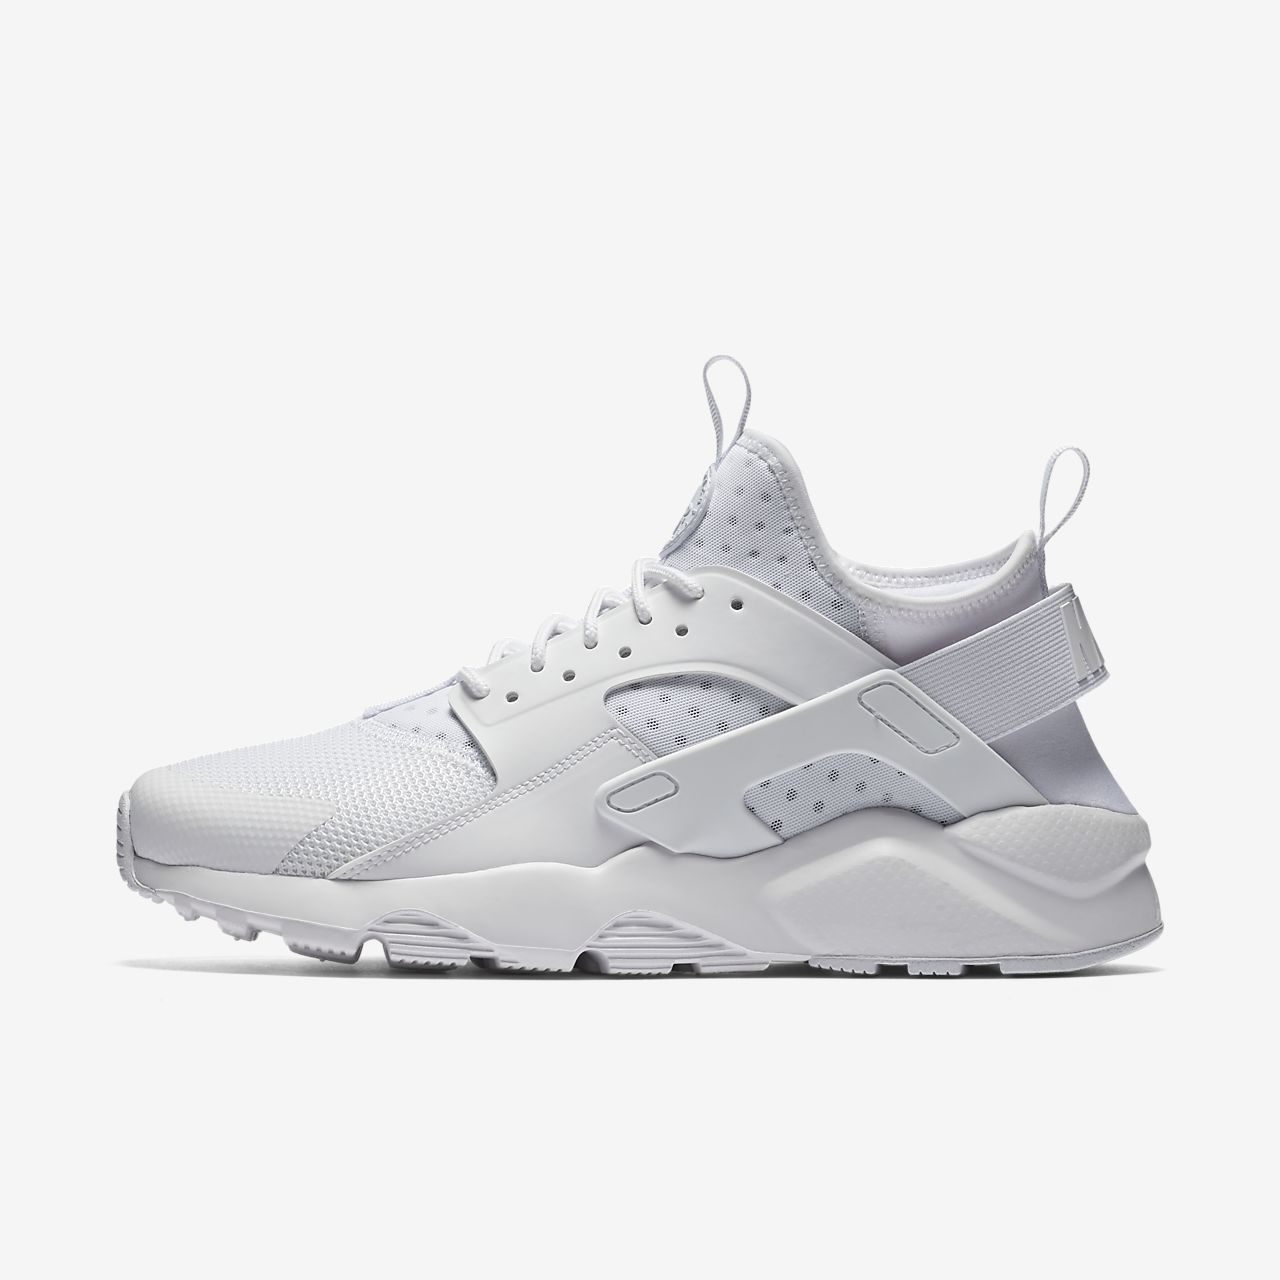 c6862b8d97f Nike Air Huarache Ultra Men s Shoe. Nike.com CA